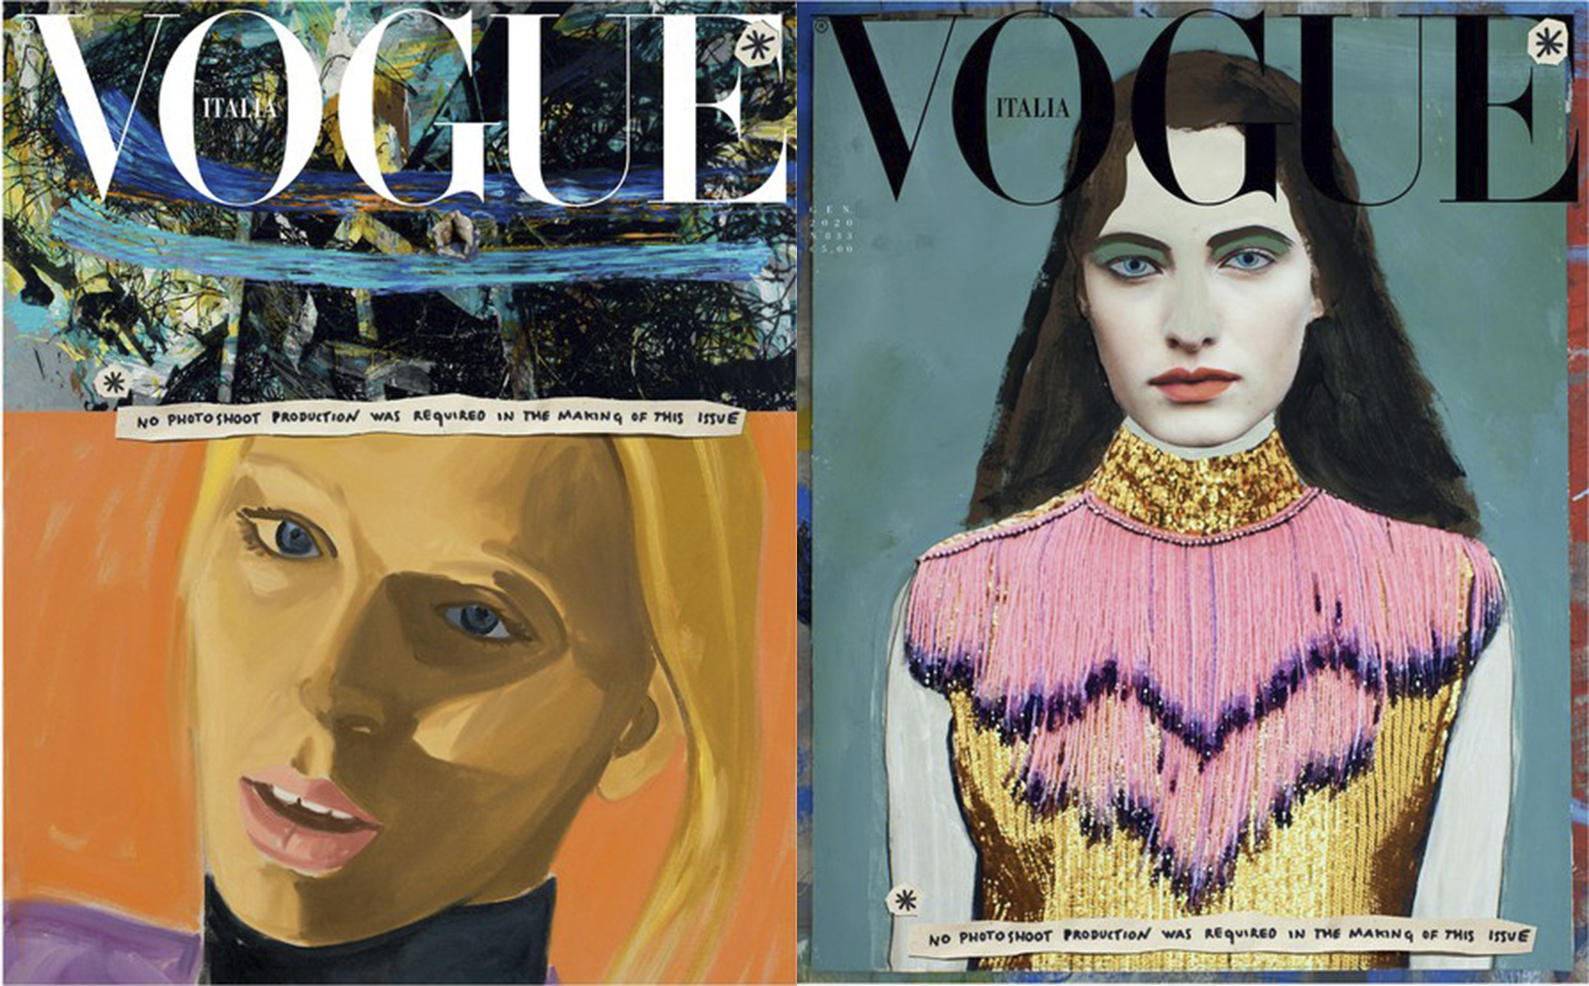 New 'Vogue Italia' cover illustrations.